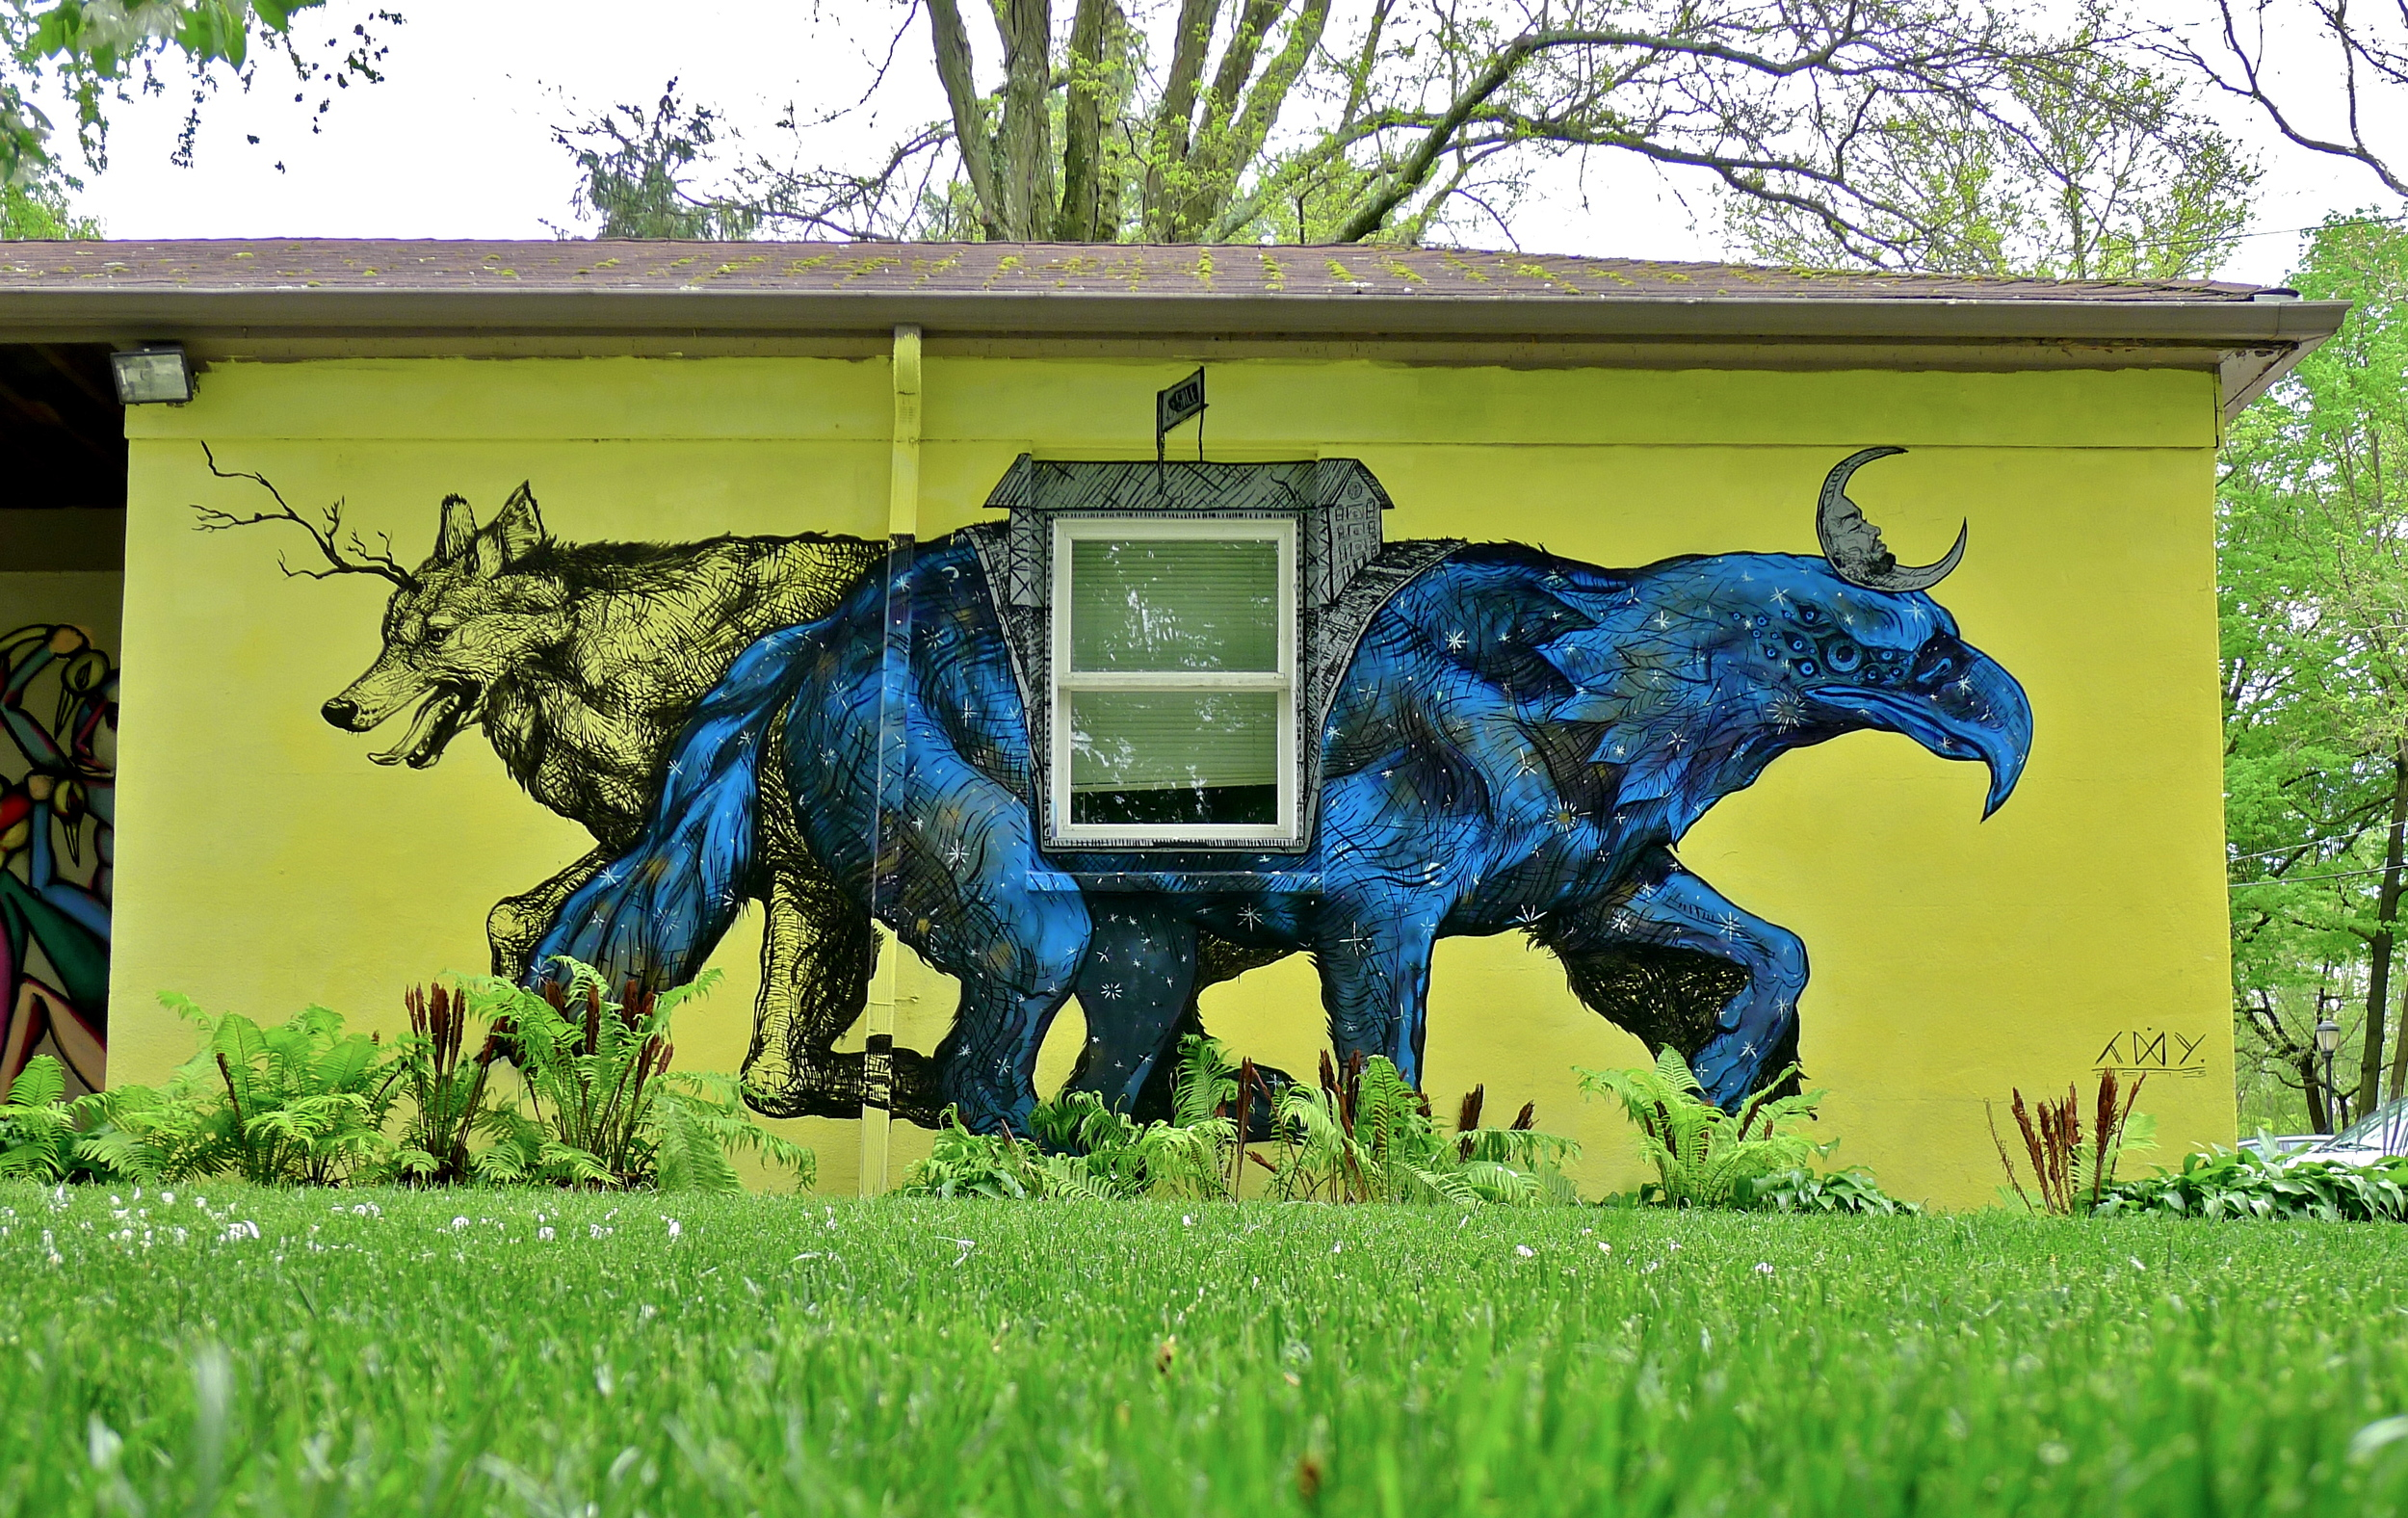 Apex Predator  by Layqa Nuna Yawar at  Haverford College . Haverford, PA. 2013. (curator/project manager)